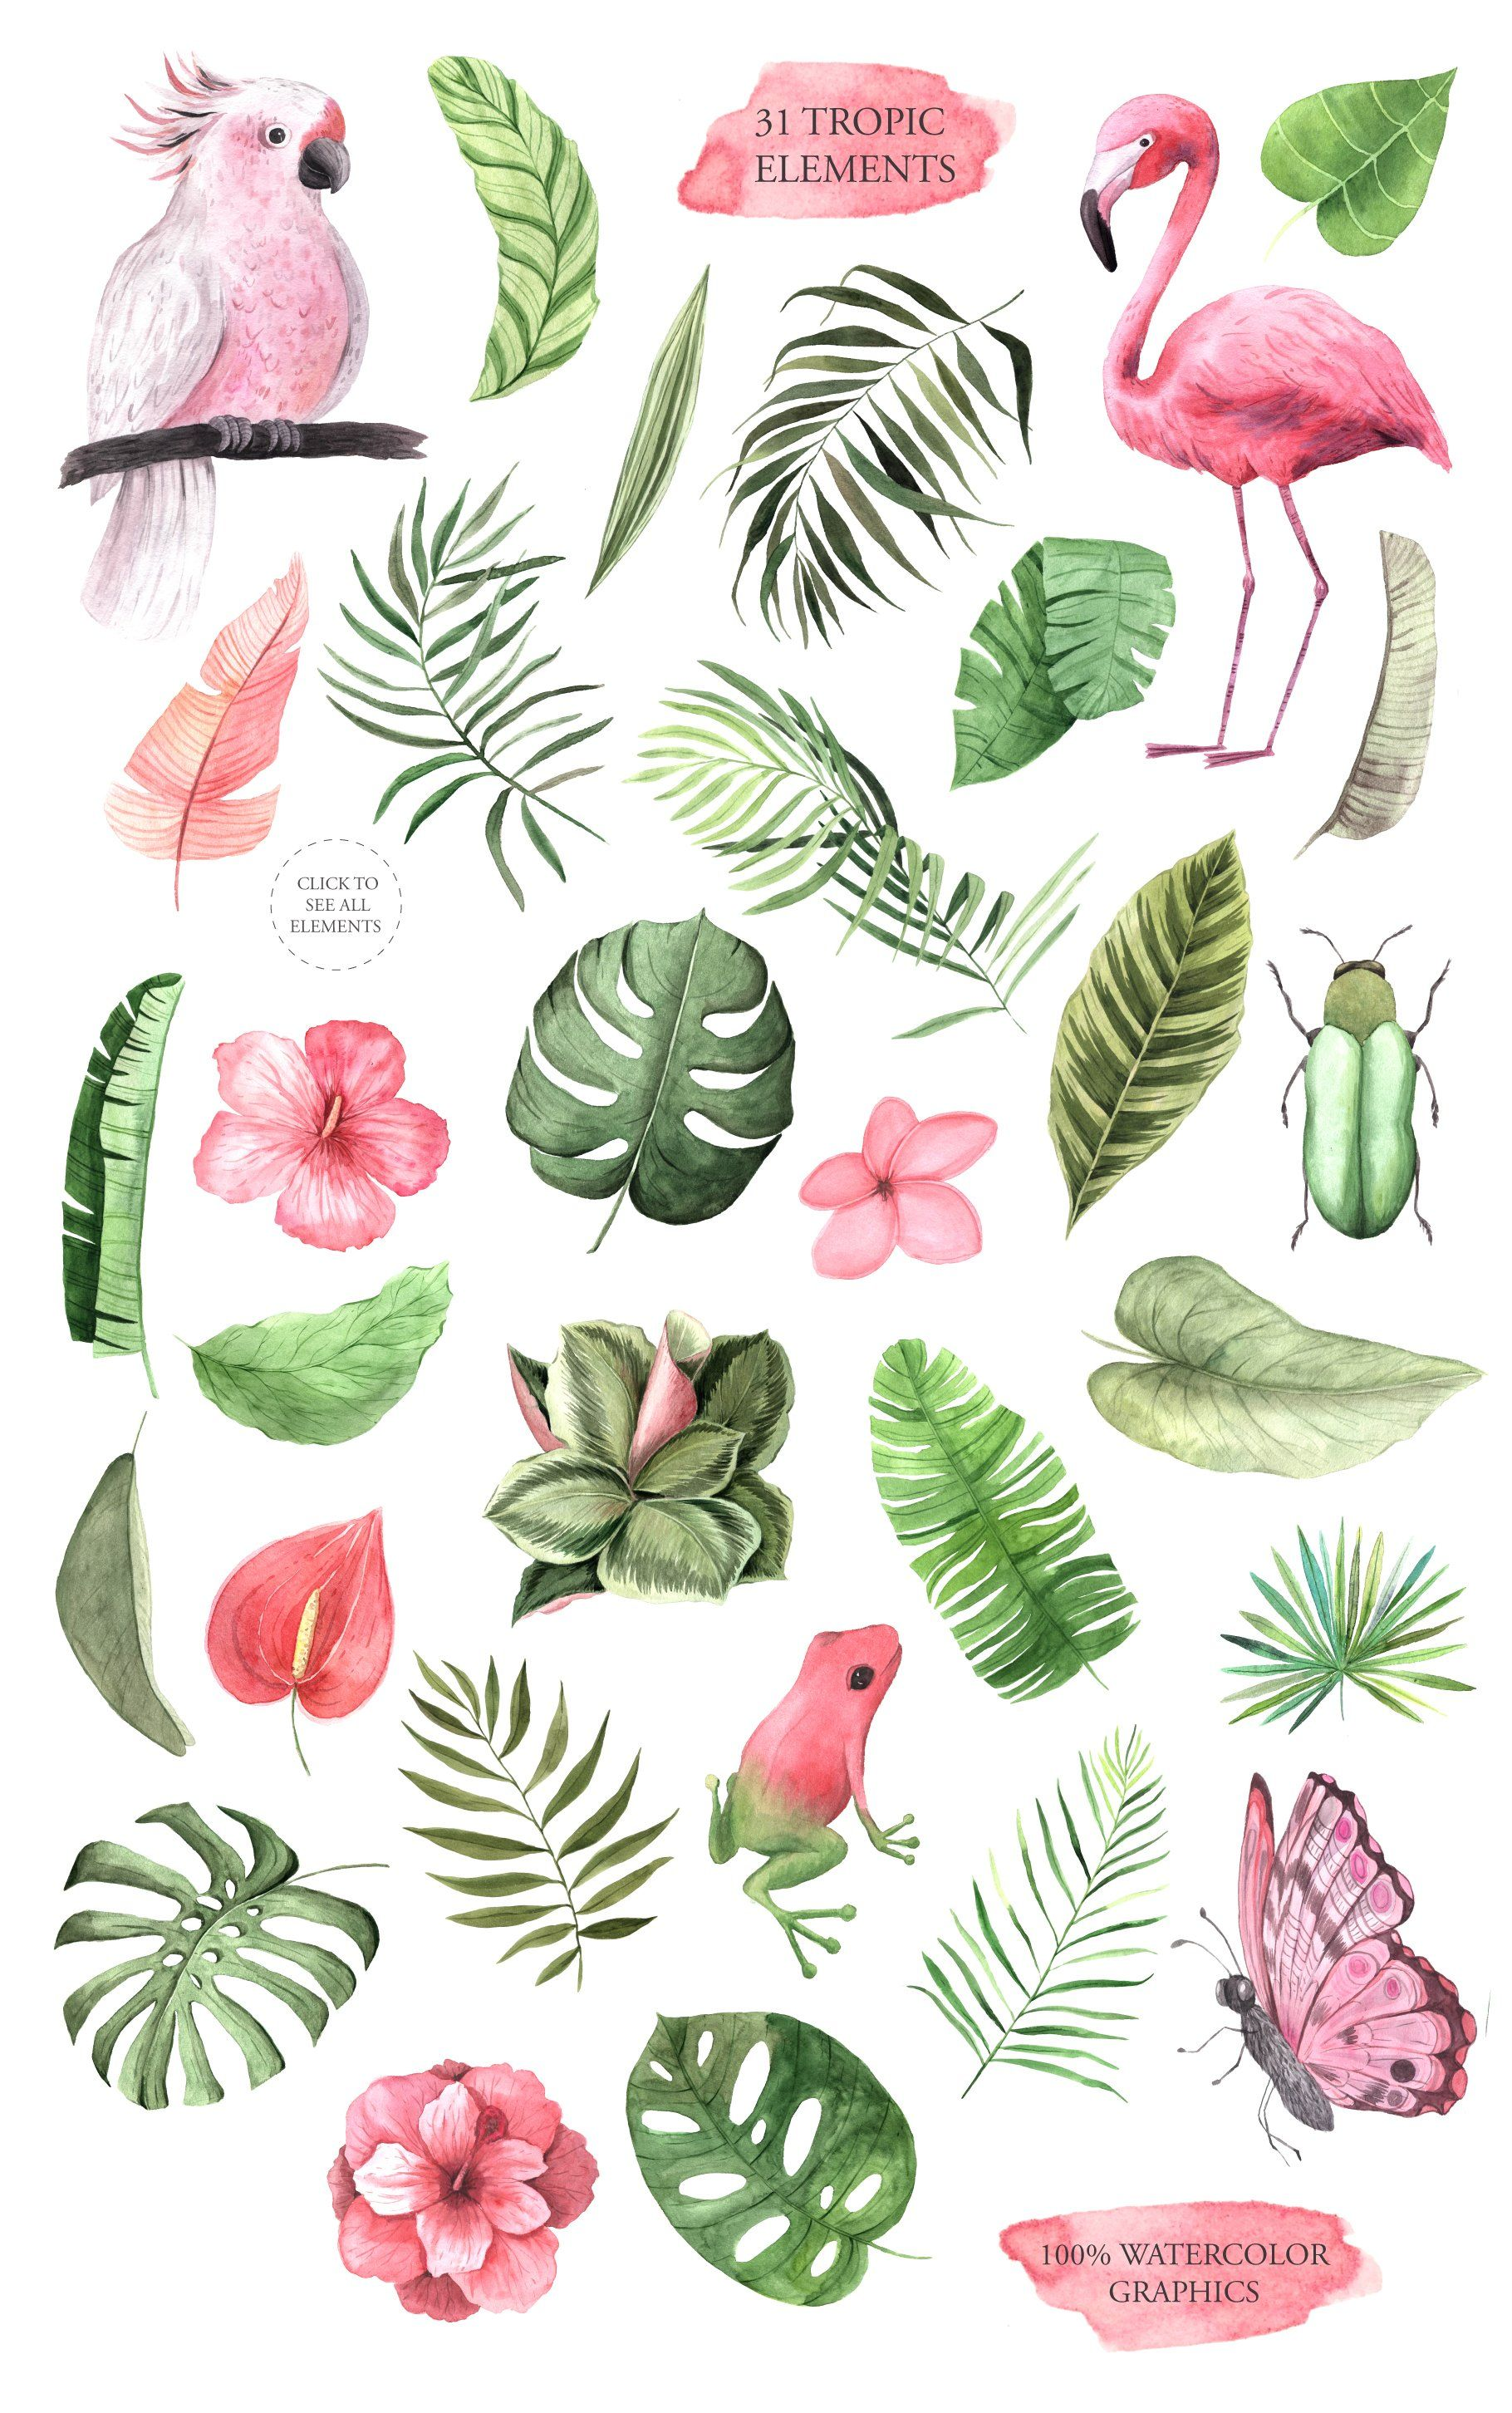 Pin On Drawing Illustration Learn how to draw tropical leaf pictures using these outlines or print just for coloring. pinterest